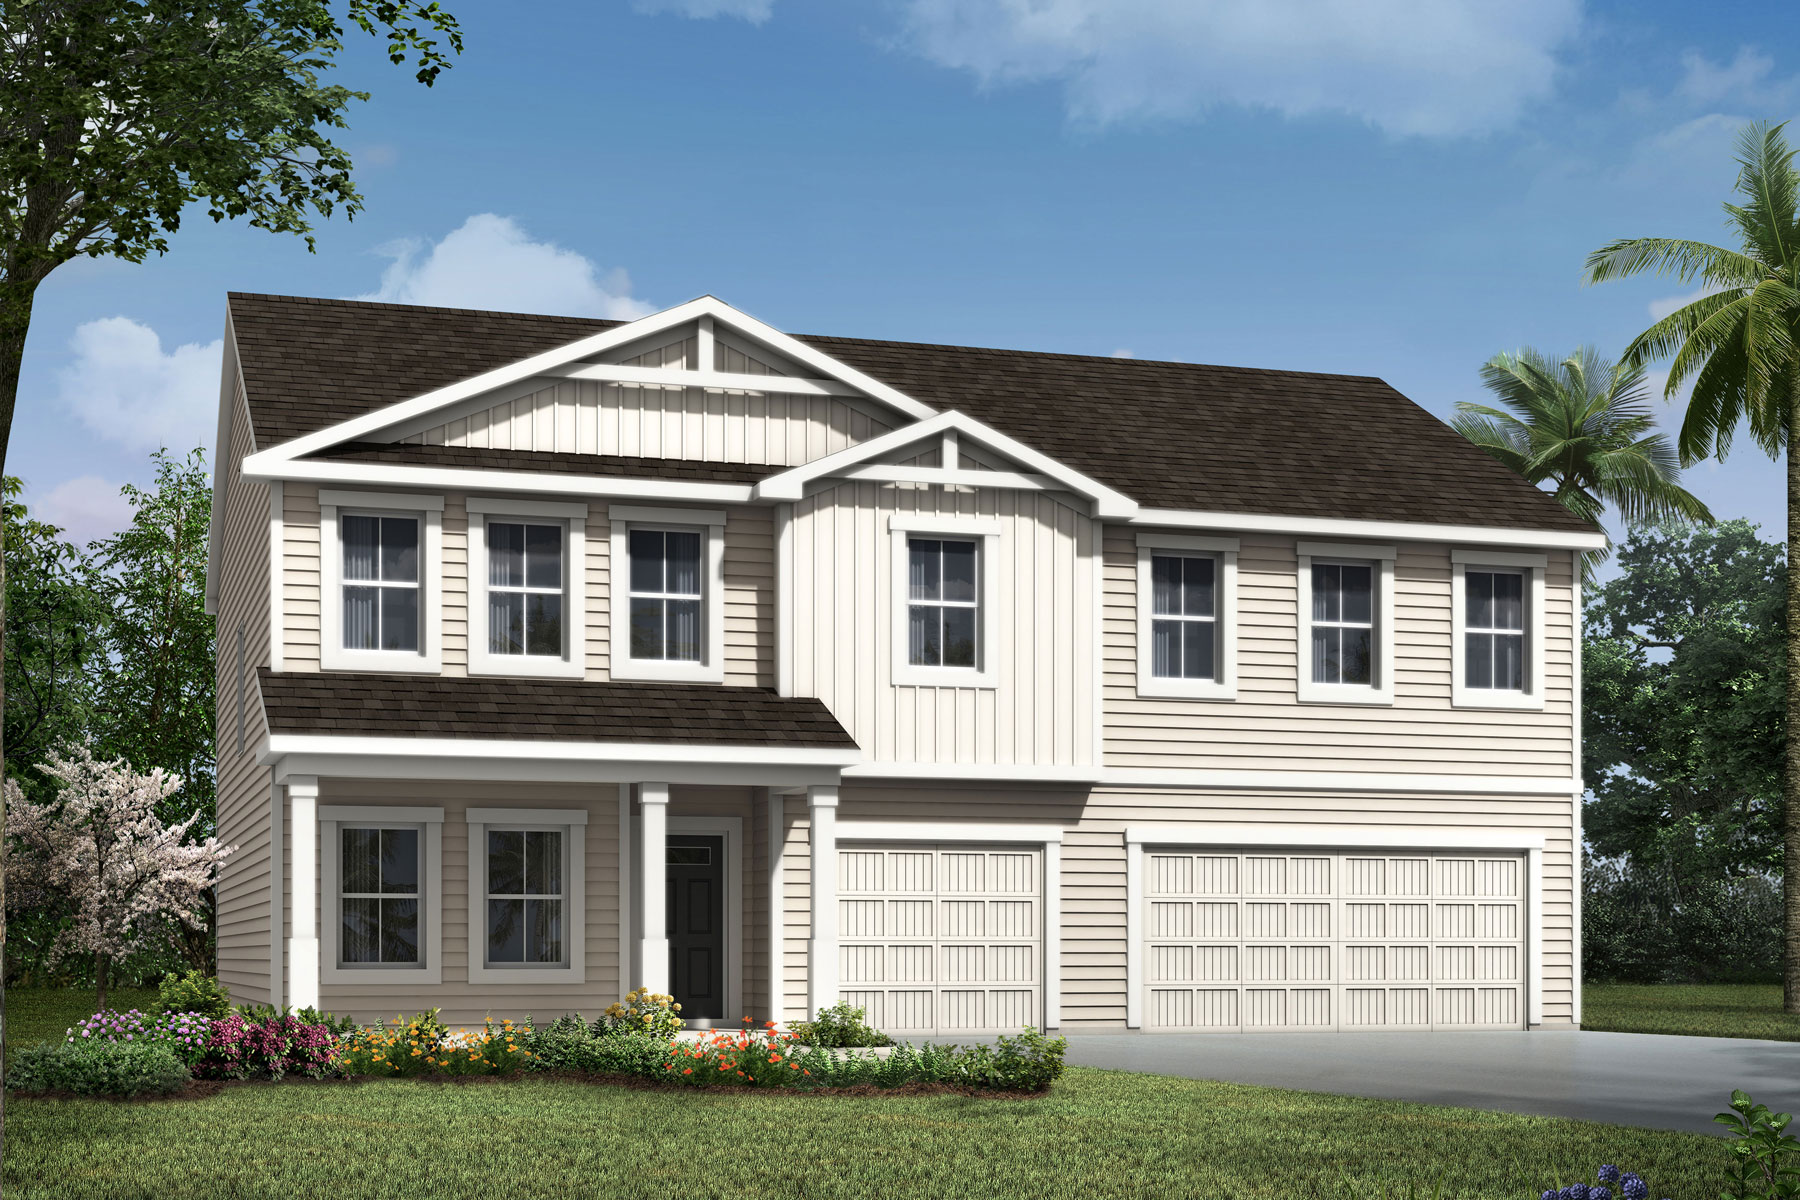 Chatam Plan jax_chatam_farmhouse at RiverTown - Haven in St. Johns Florida by Mattamy Homes